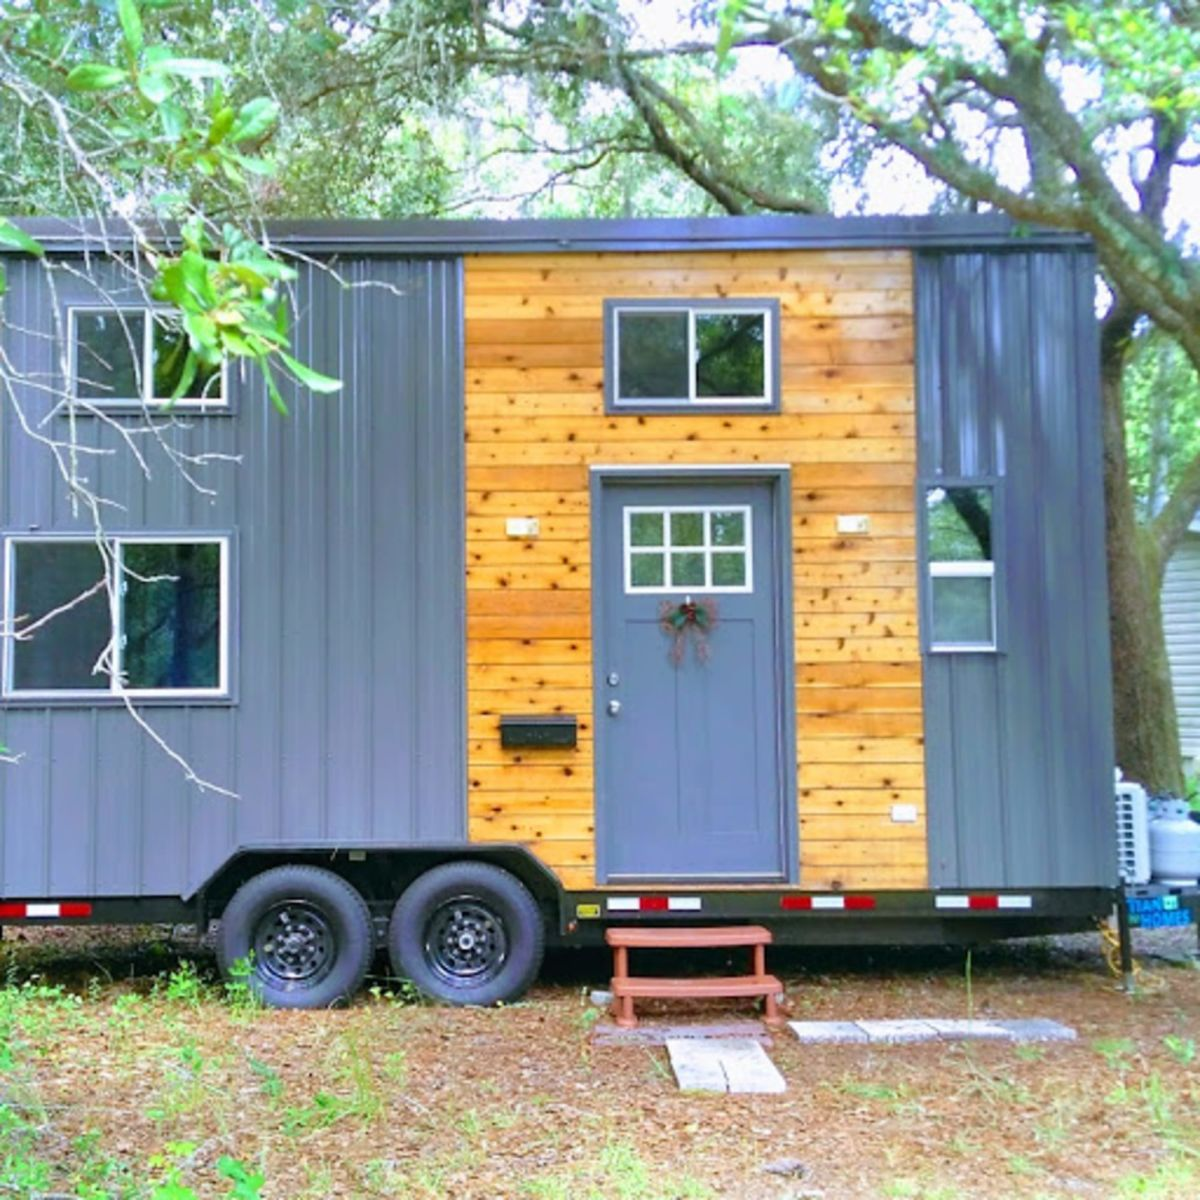 Small House For Rent: Tiny Houses For Sale In Jacksonville